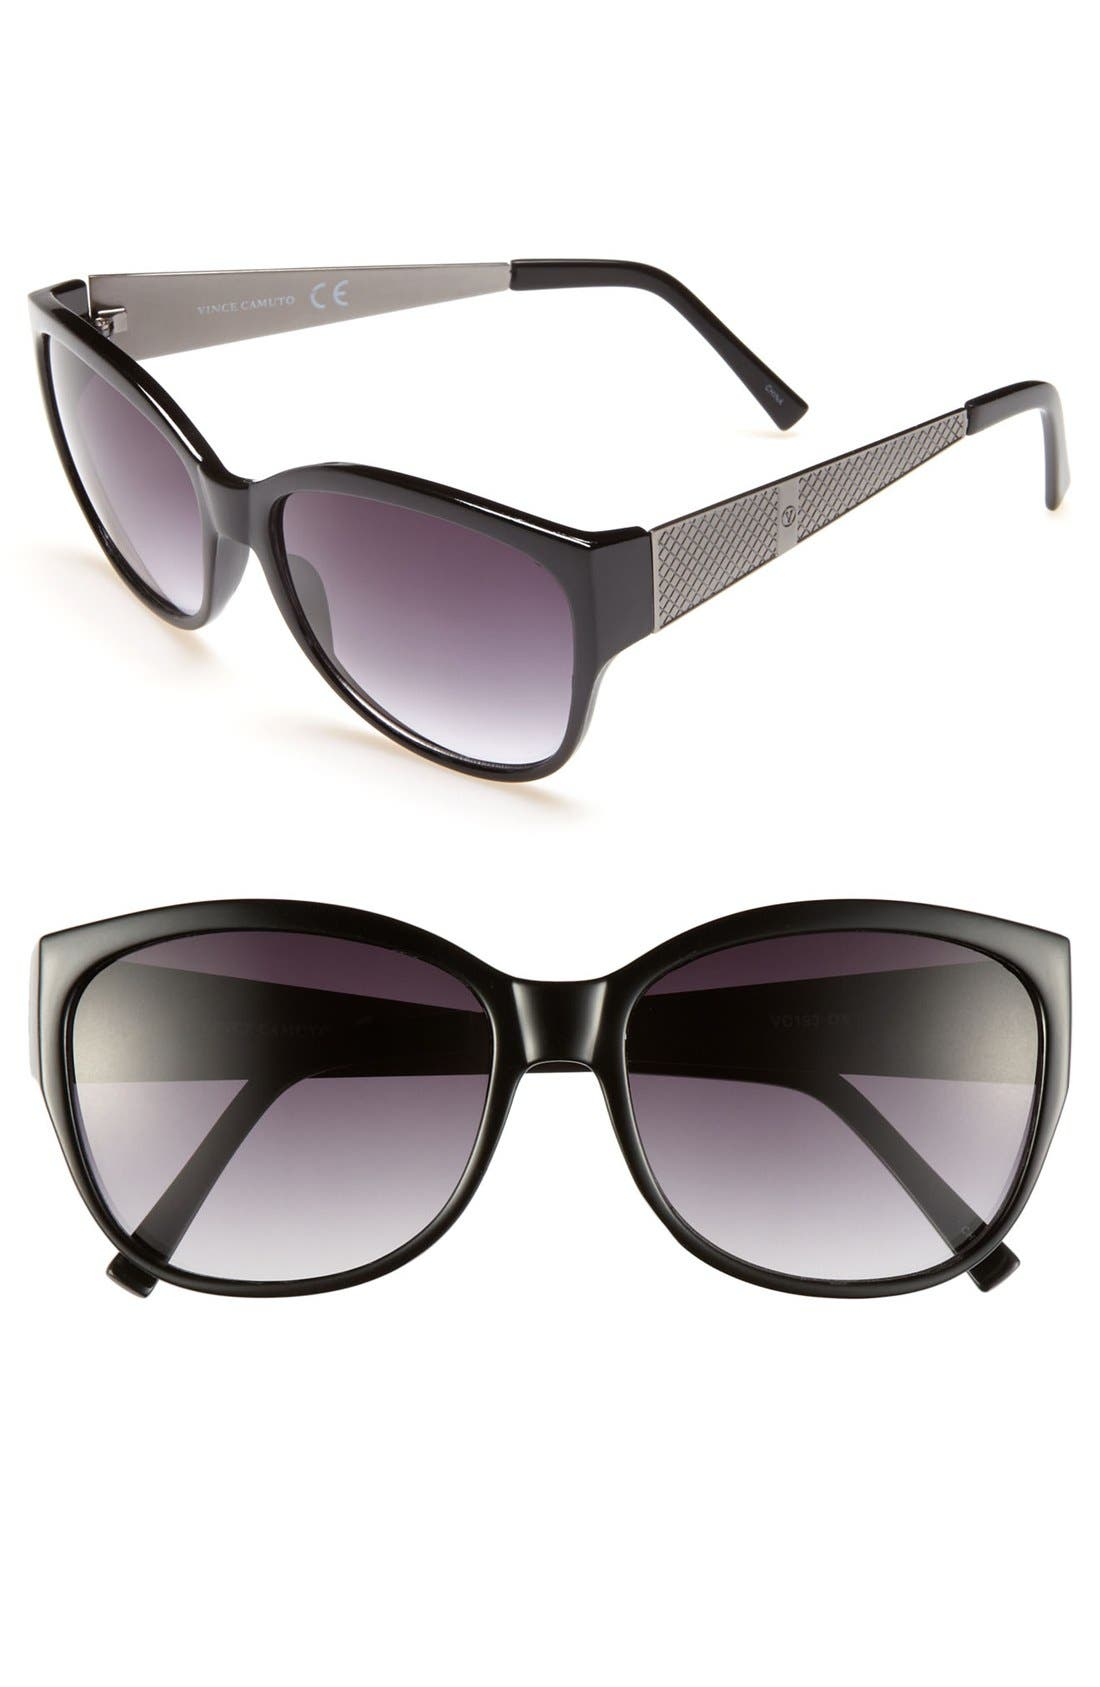 Main Image - Vince Camuto 55mm Oversized Sunglasses